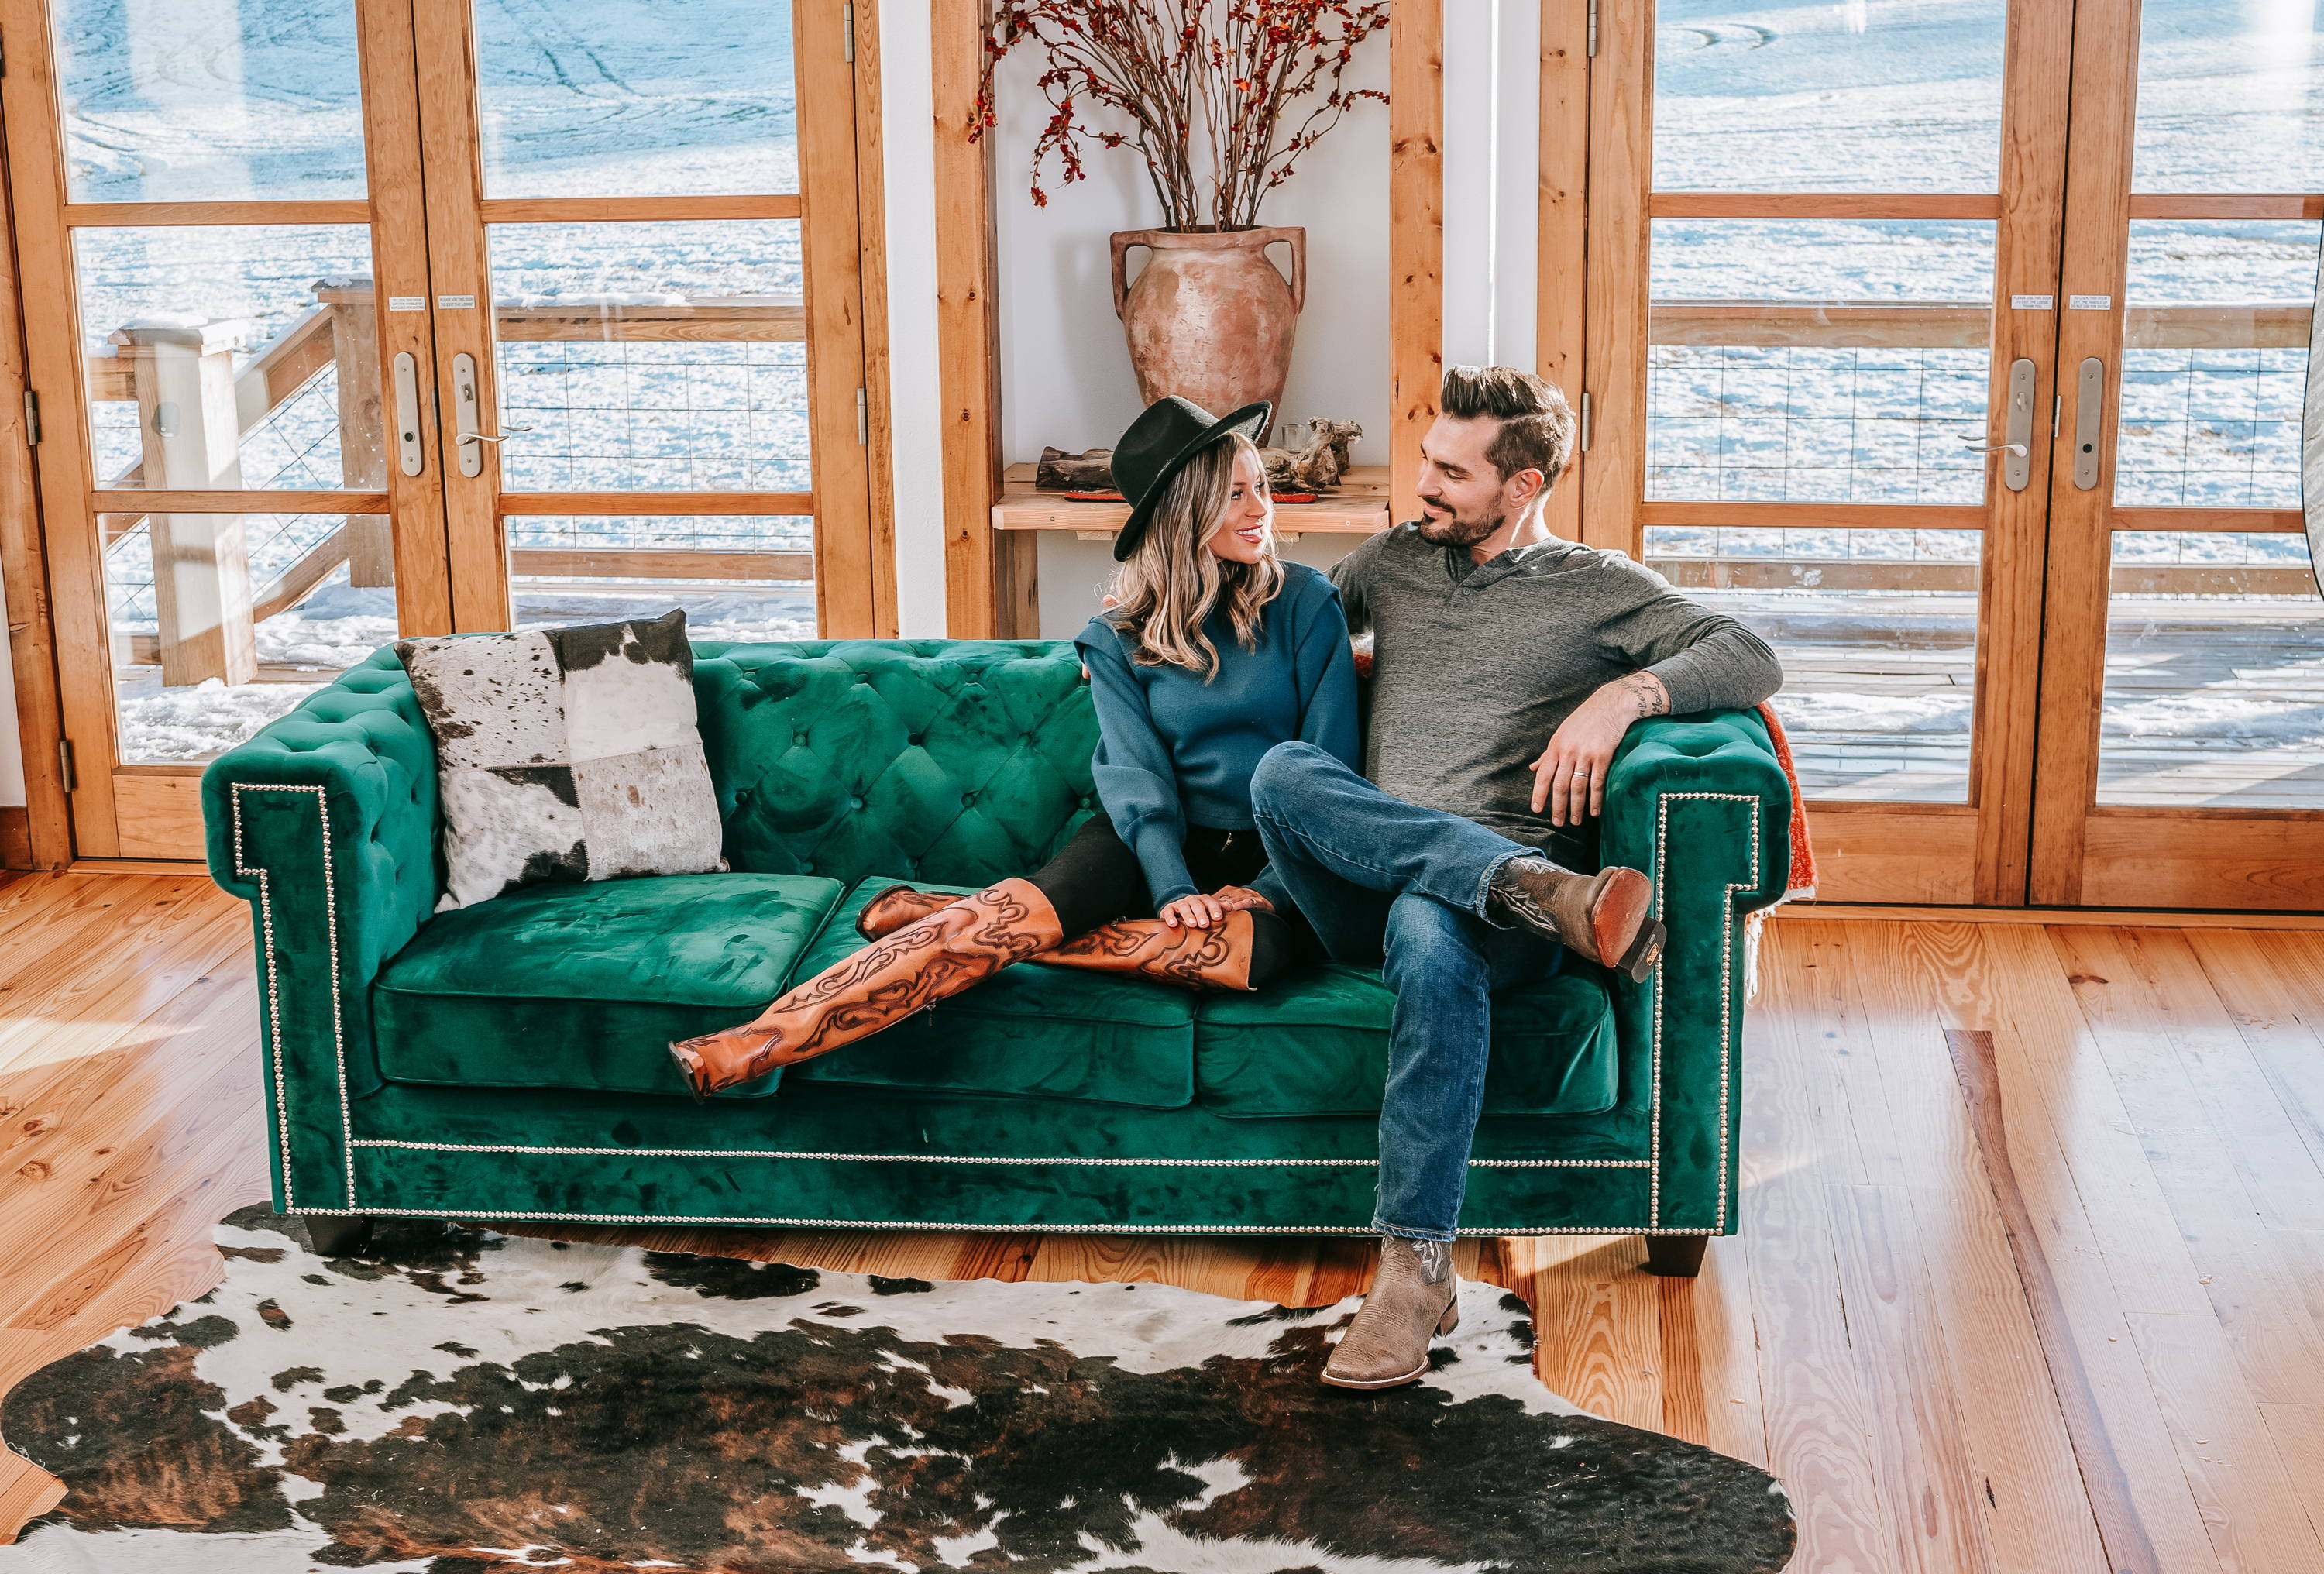 Dan Post Boots Header Image of couple on couch in boots